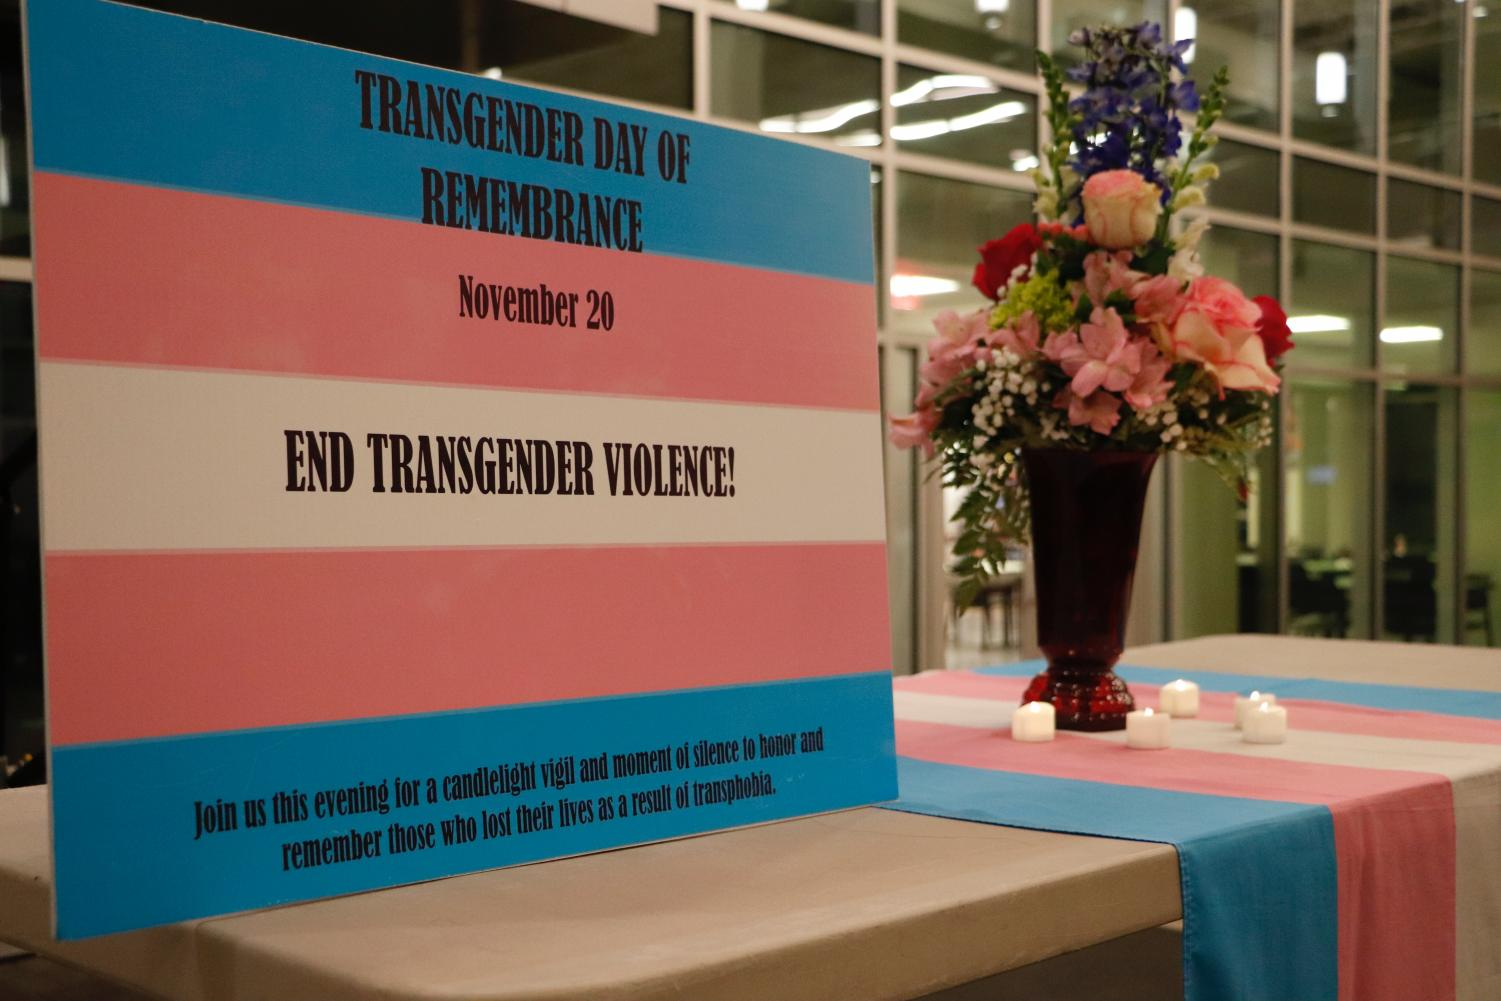 Members and allies of the LGBTQ+ community gathered as StandOUT hosted an event in honor of Transgender Day of Remembrance on Nov. 20 in the Student Union Breezeway.